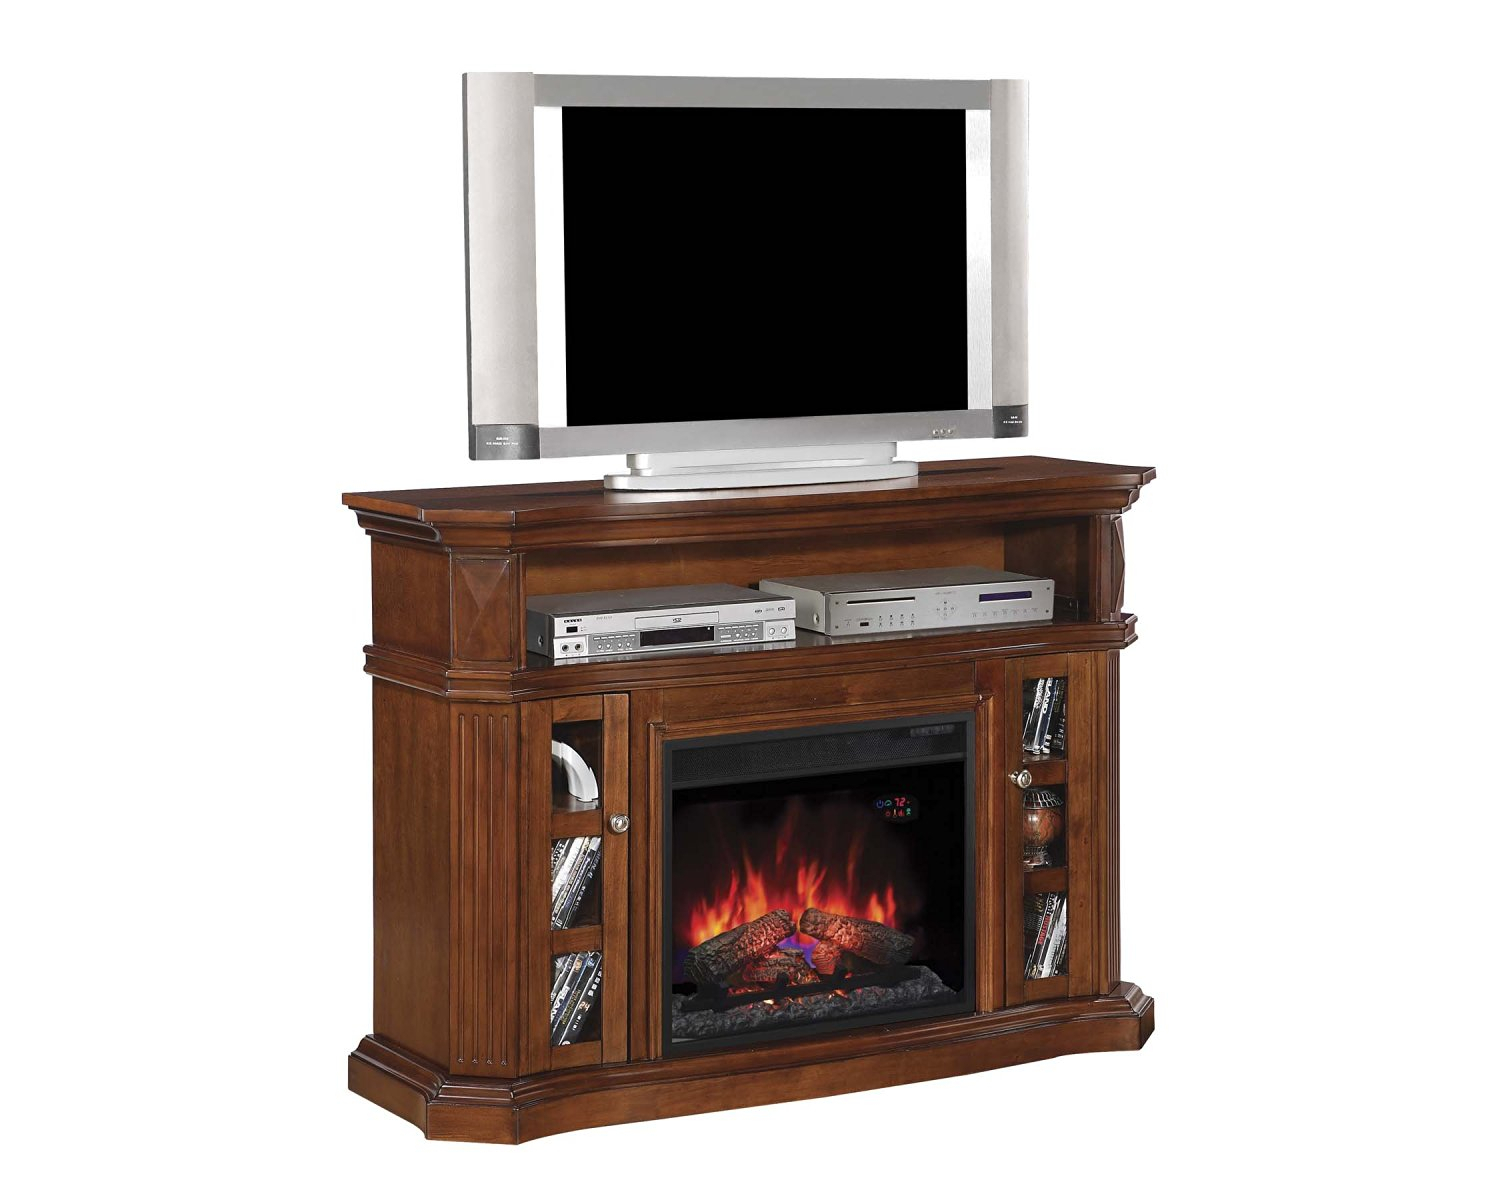 Buy Classicflame 26mms9626 Nw145 Enterprise Tv Stand With Speakers With Regard To Dixon White 65 Inch Tv Stands (View 13 of 30)